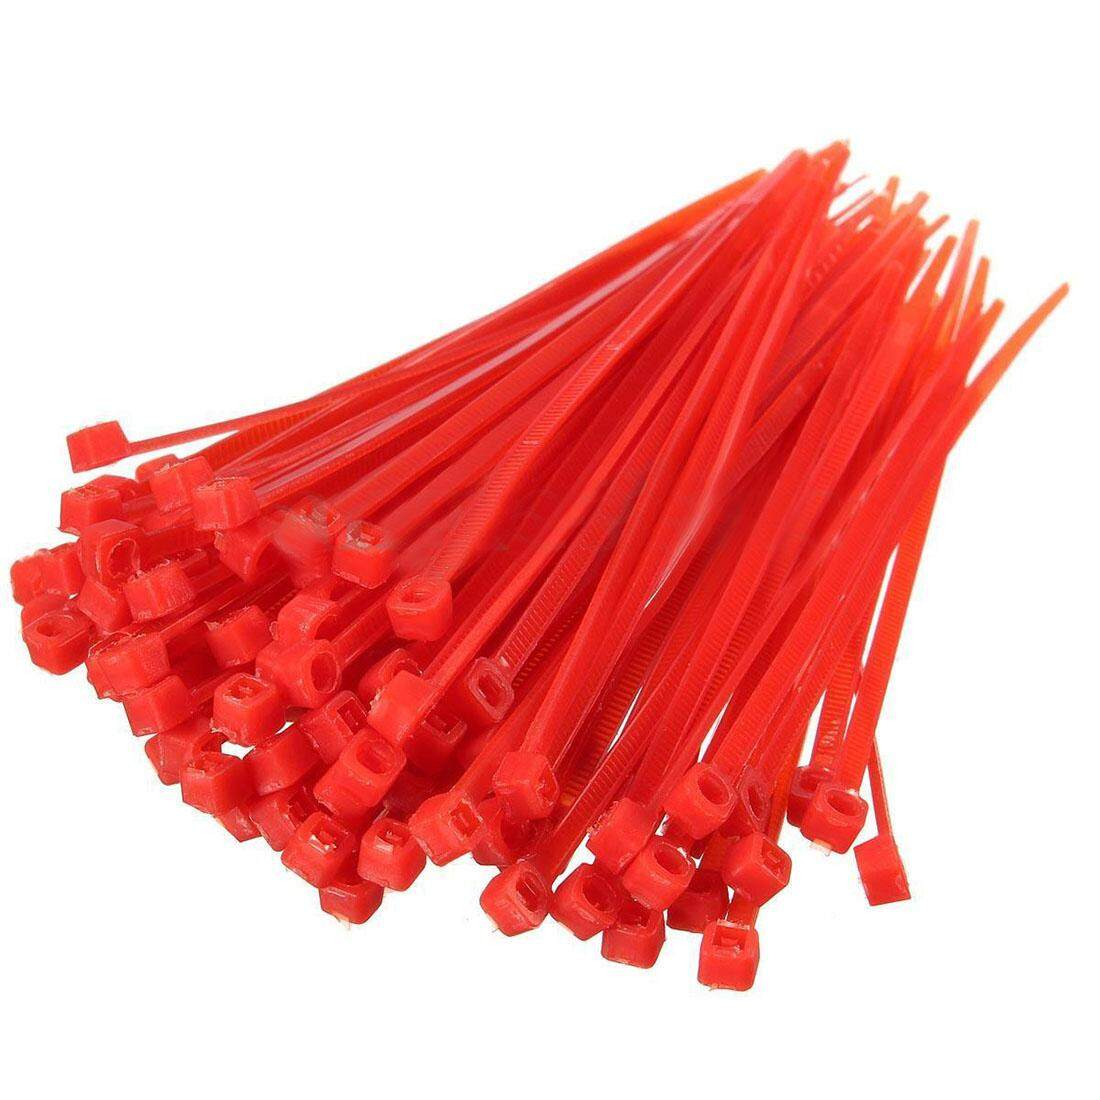 100X 2.5mmx100mm Nylon Cable Wire Zip Ties Cord Wrap Strap Color:Red